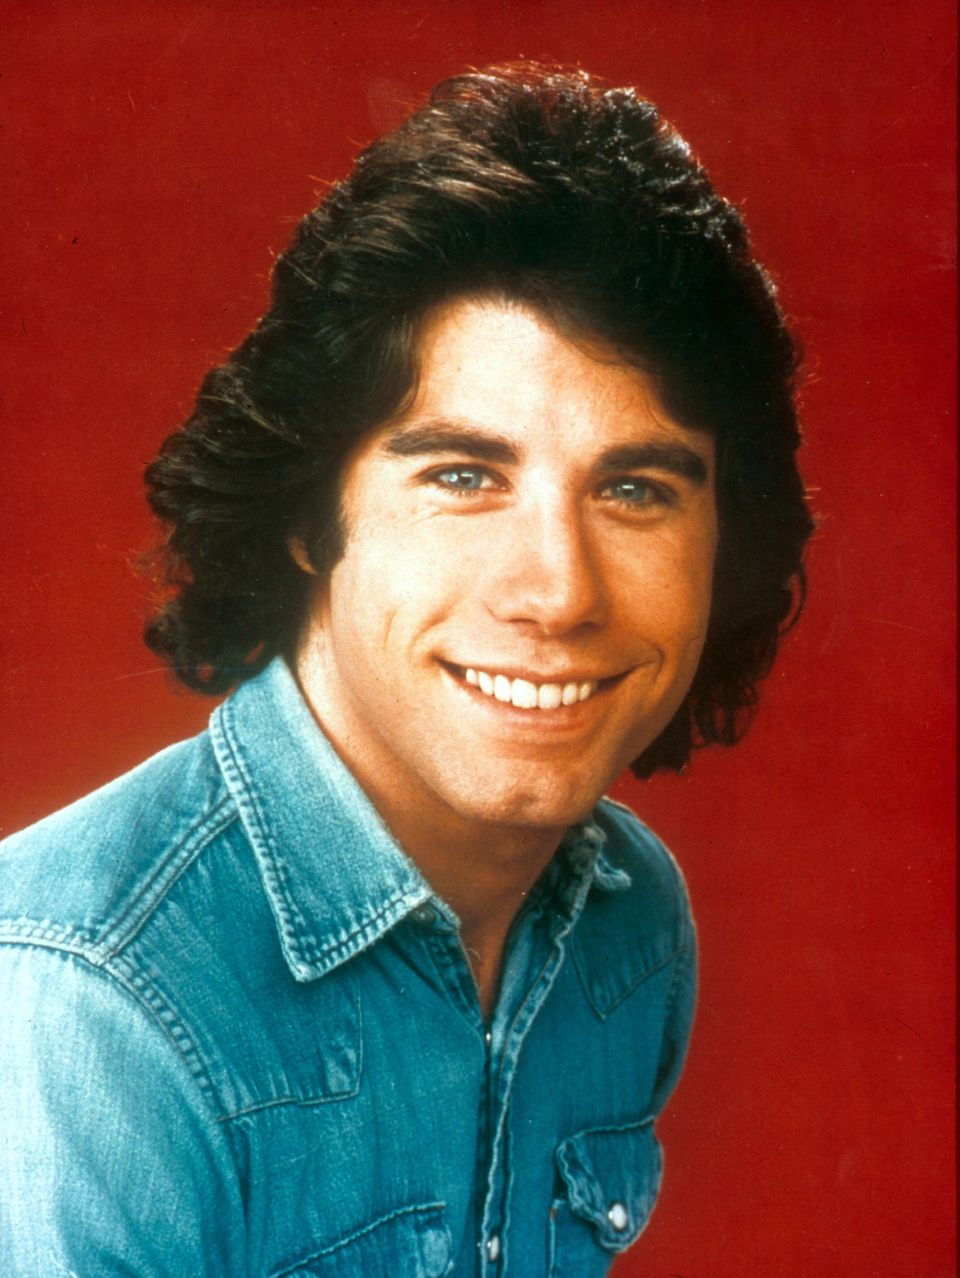 "<a href=""http://www.businessinsider.com/celebrity-high-school-dropouts-2012-4?op=1"">John Travolta dropped out of high school<"